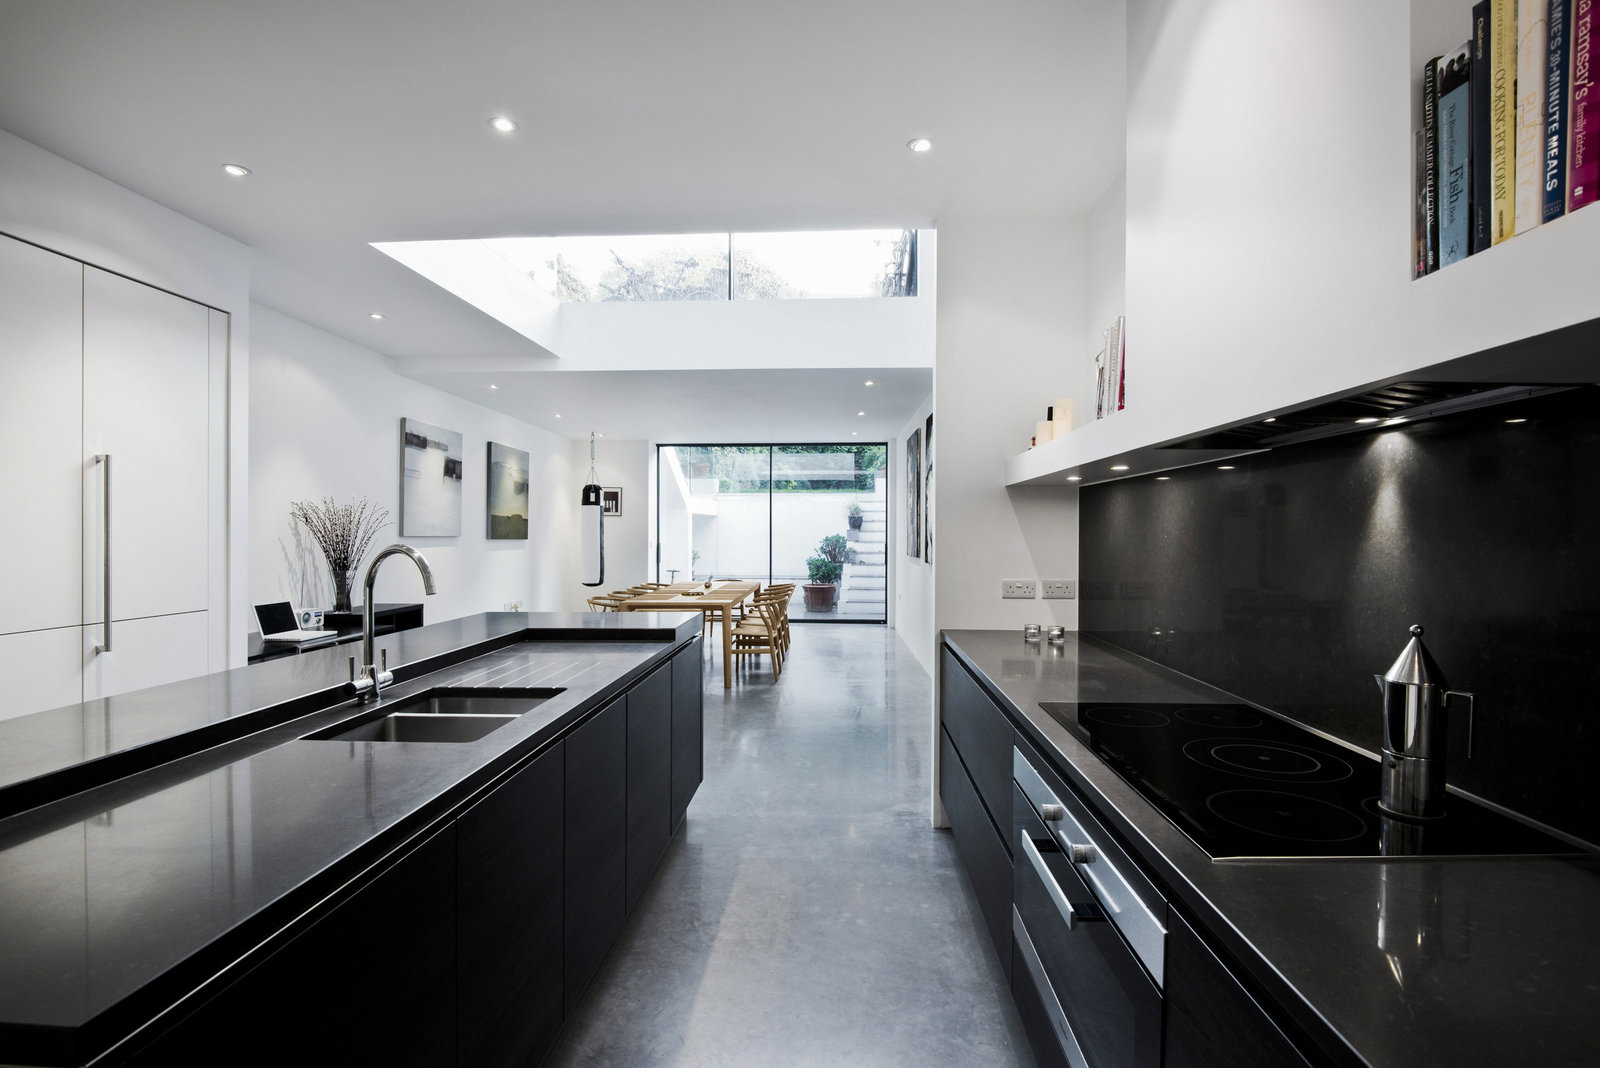 monochrome modern kitche design London interior